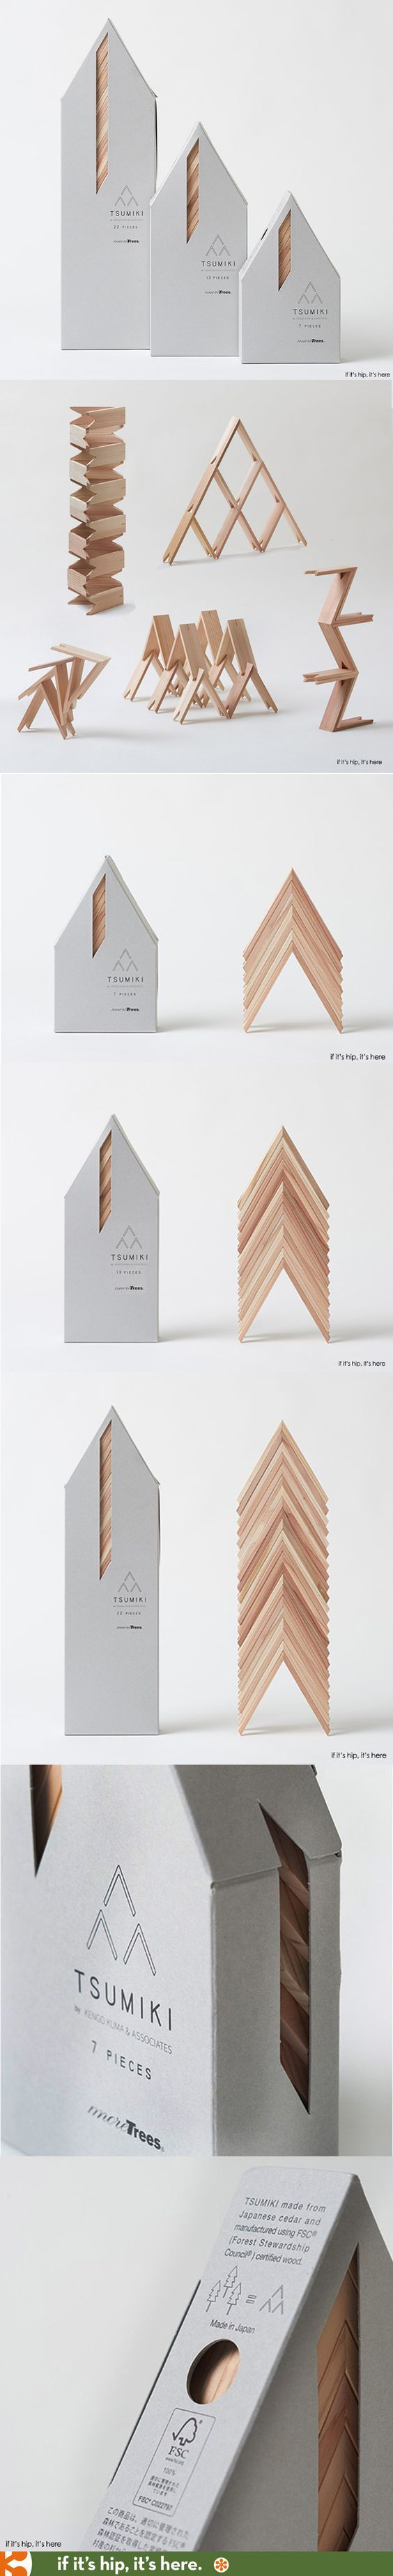 Japanese architect Kengo Kuma has collaborated with forest conservation organization More Trees to produce a set of beautifully packaged and unusually designed building blocks for children.: